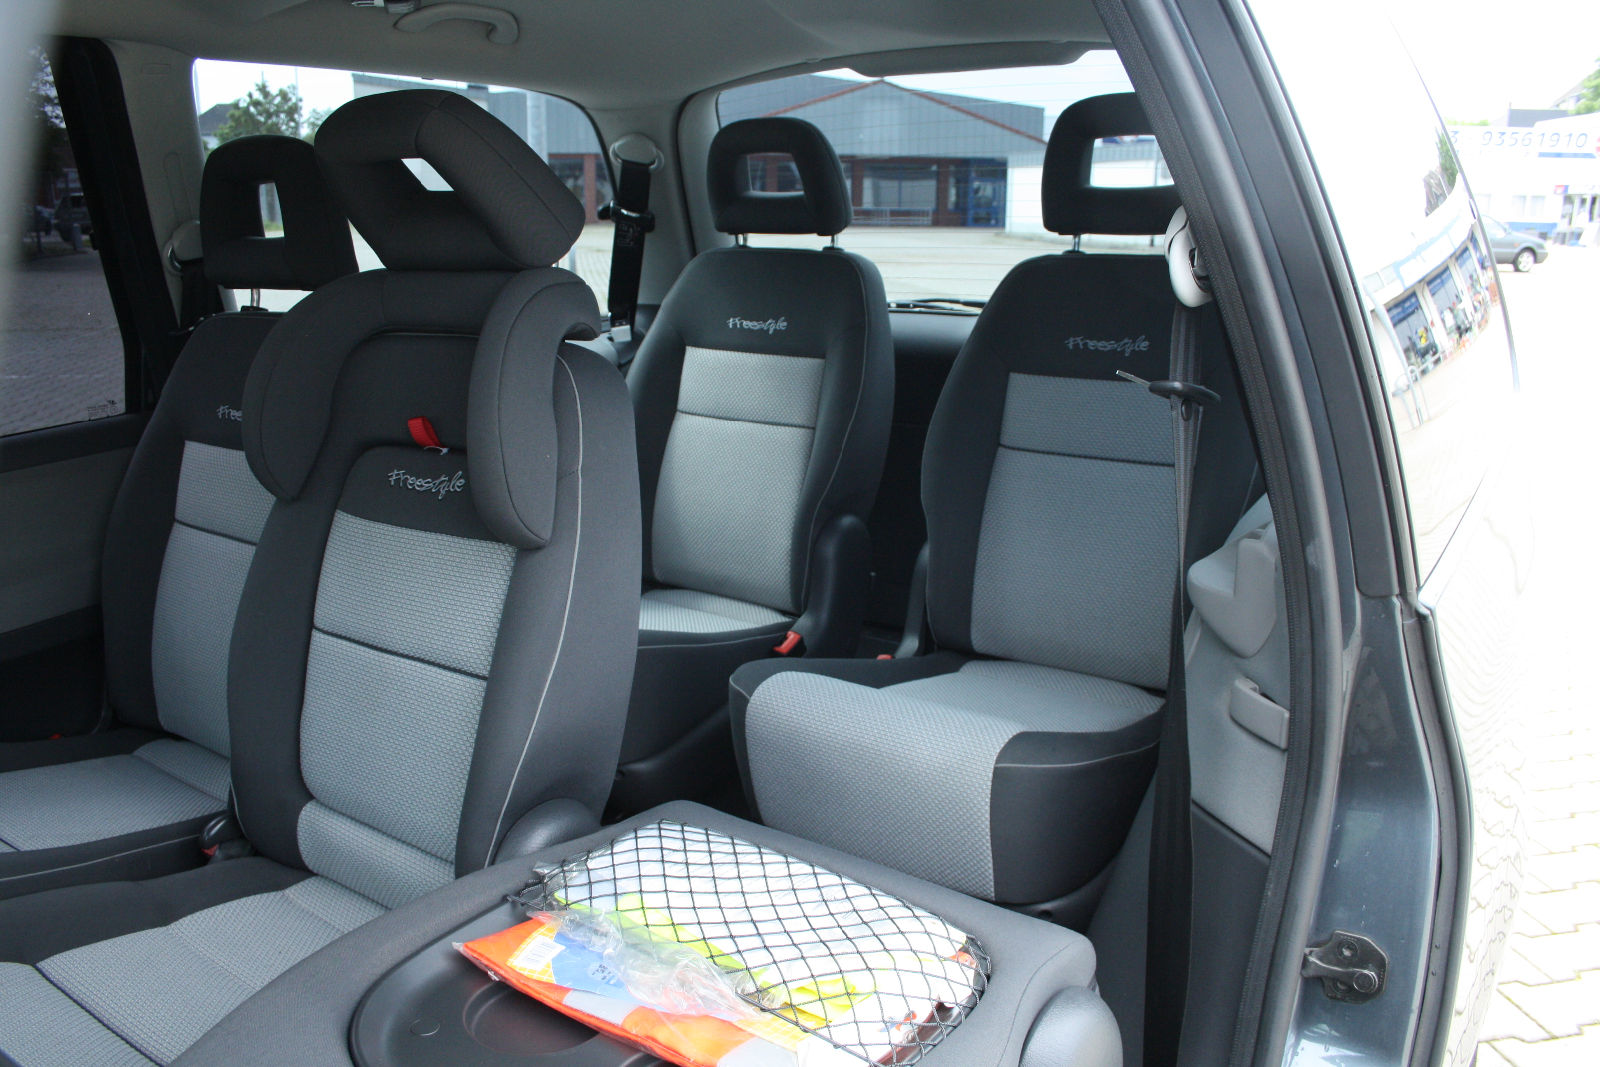 VOLKSWAGEN SHARAN (05/2007) - GREY METALLIC - lieu: